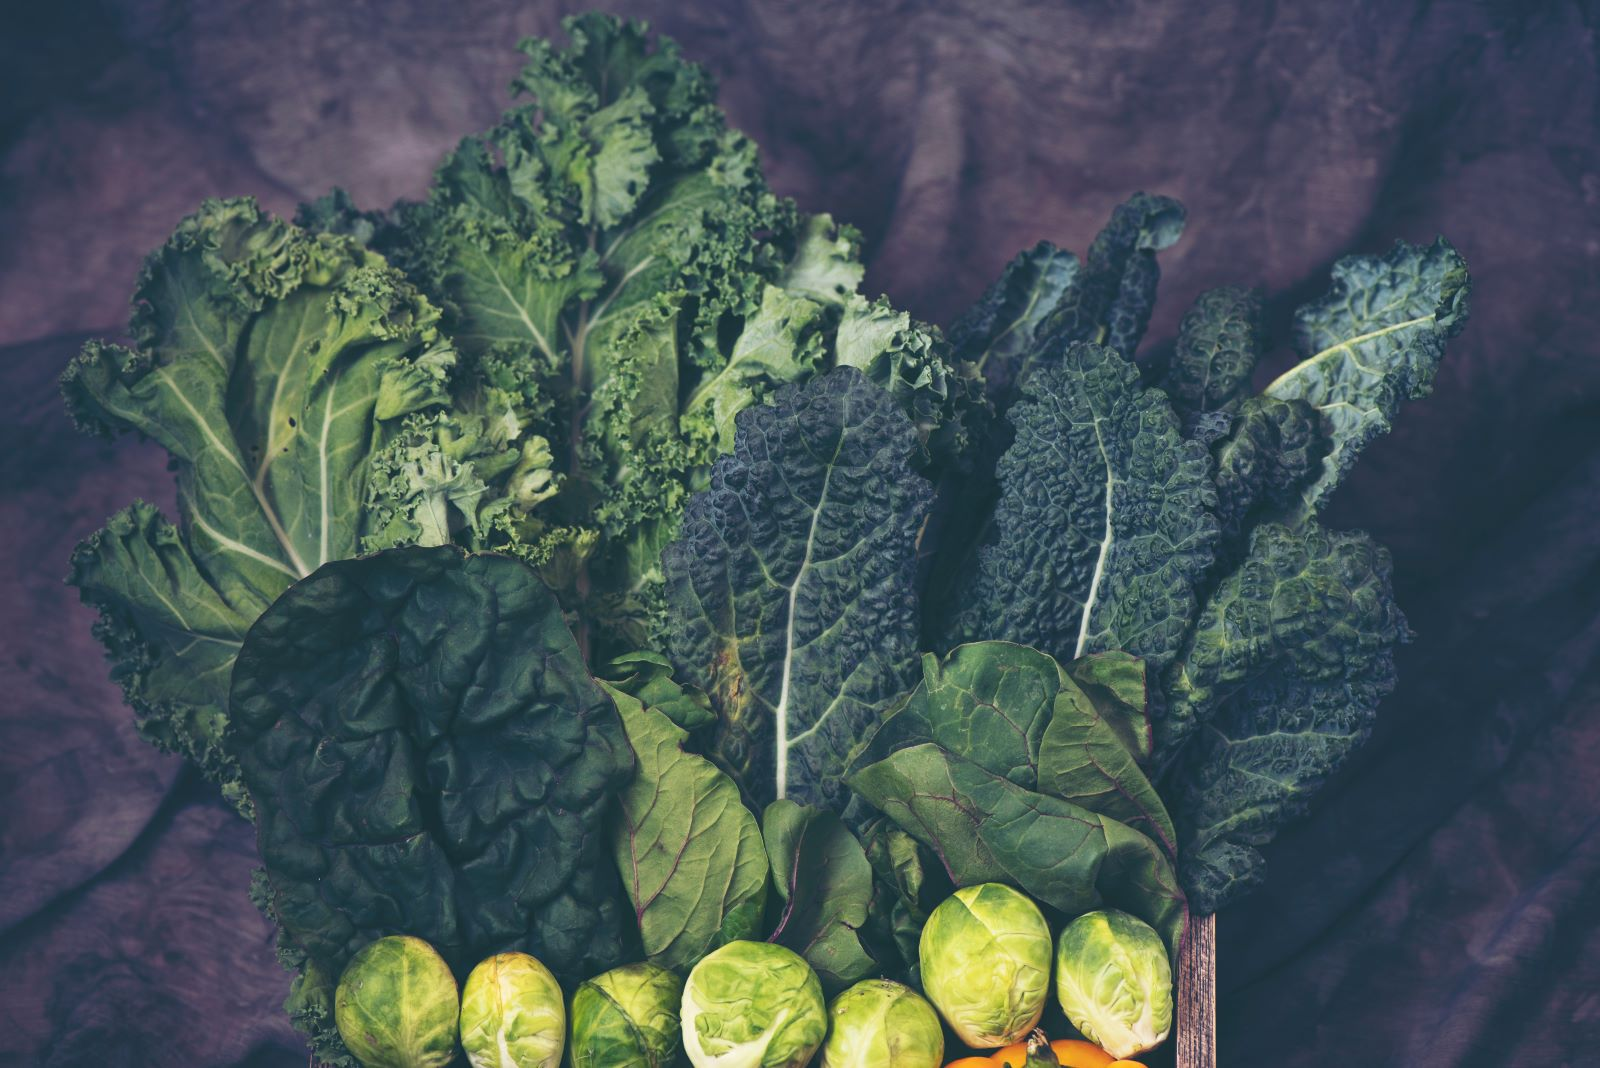 Crate with a variety of greens like kale, collards, and Brussels sprouts sitting on a dark drop cloth